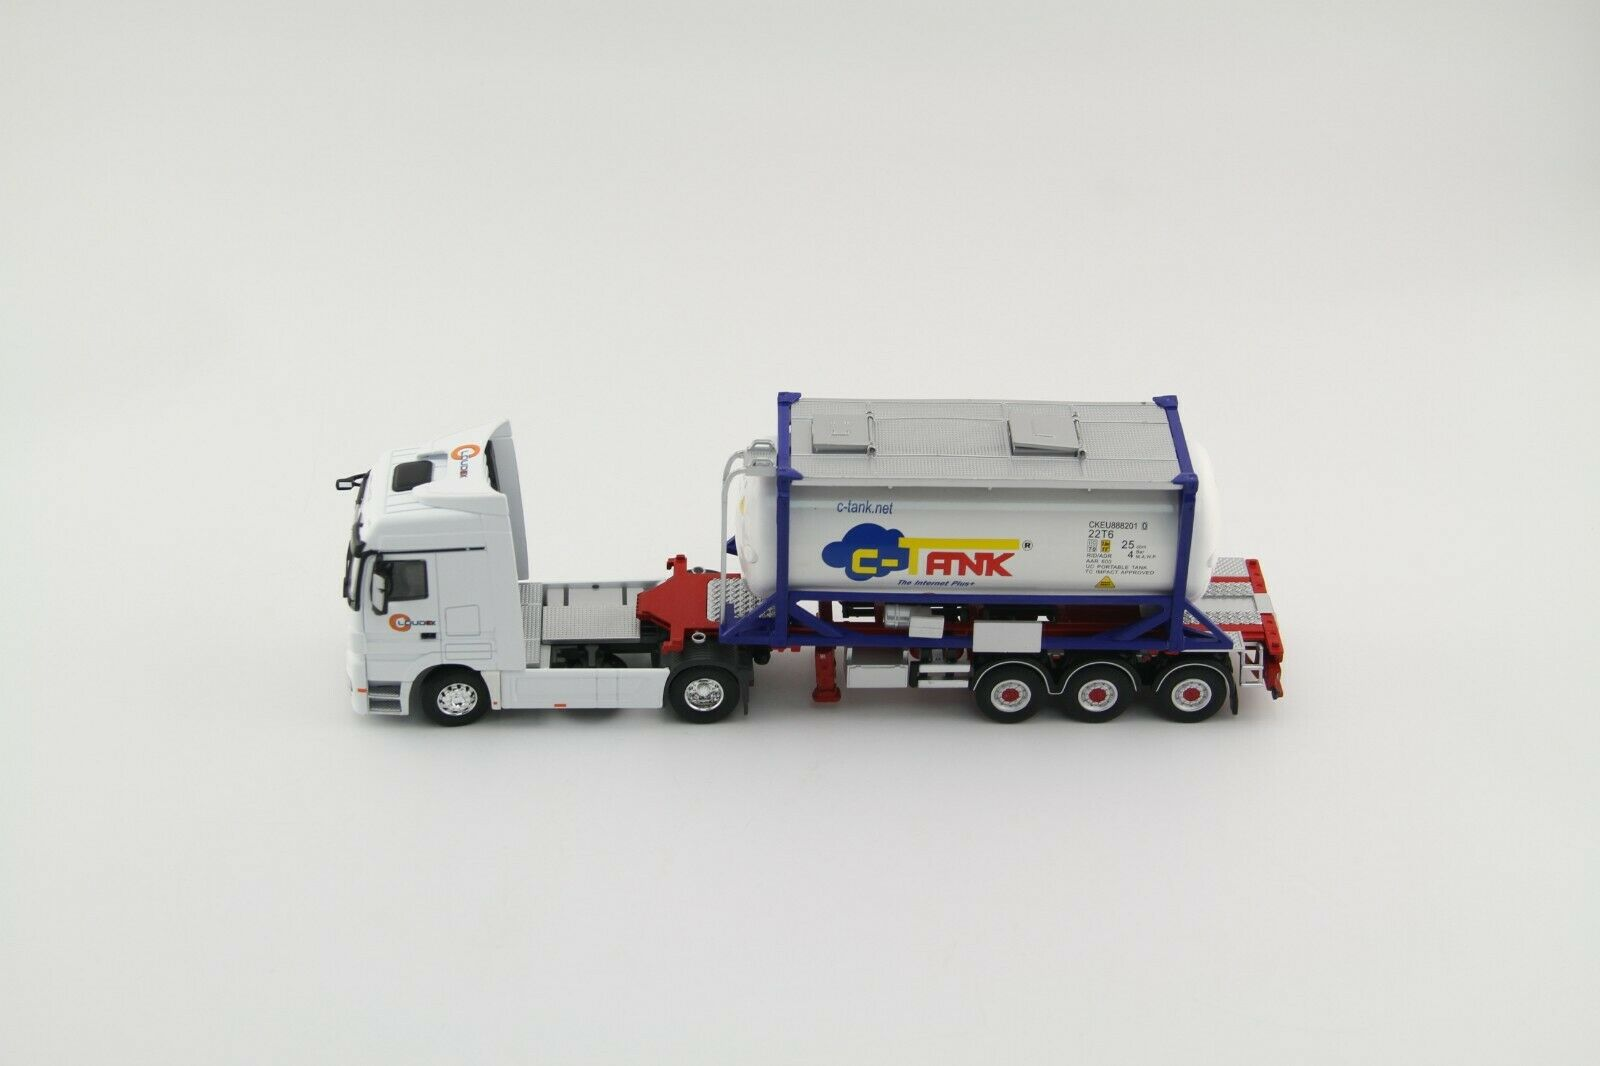 Collectible Diecast Toy Model 1 50 Loudex Oil C Tank Container Truck Vehicles